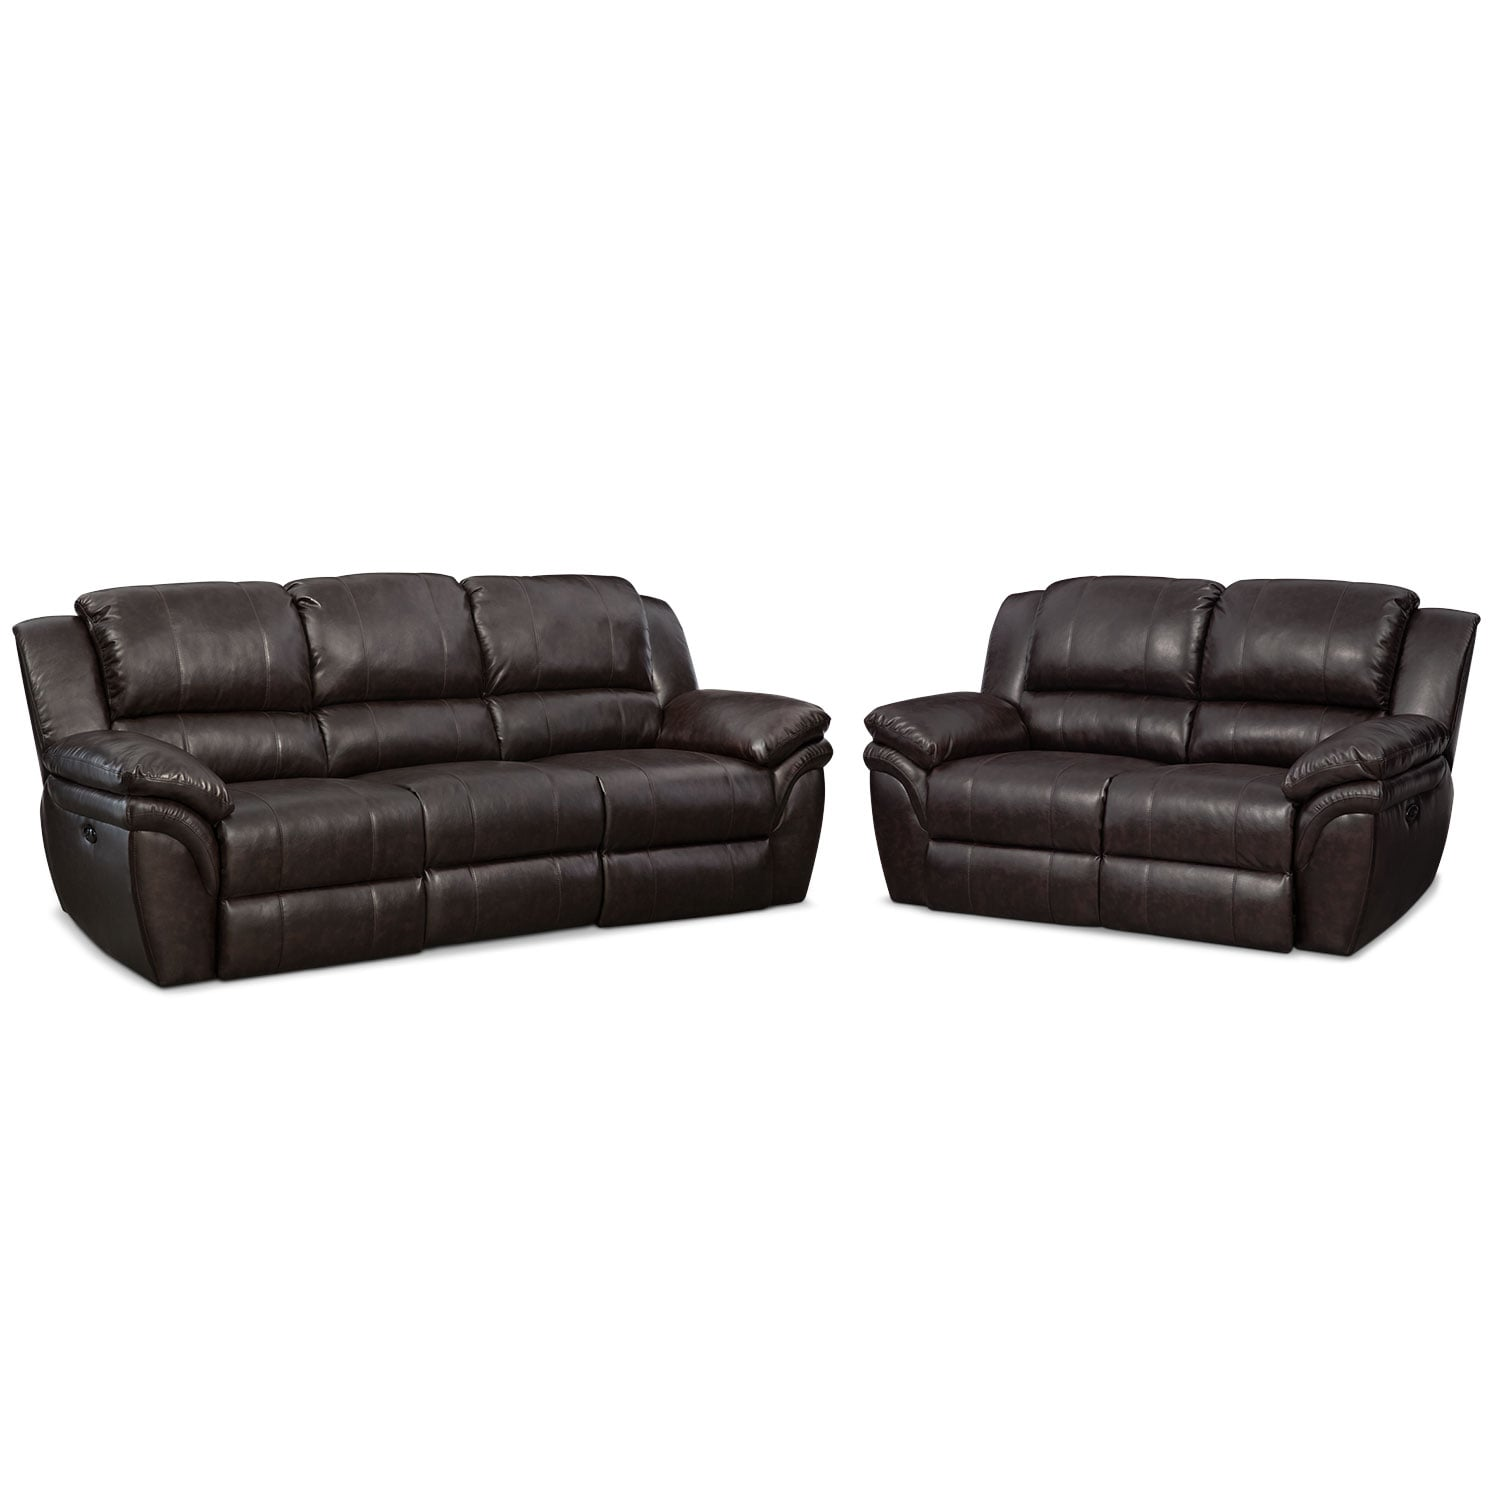 Brown Sofa And Loveseat Sets Aldo Power Reclining Sofa And Loveseat Set